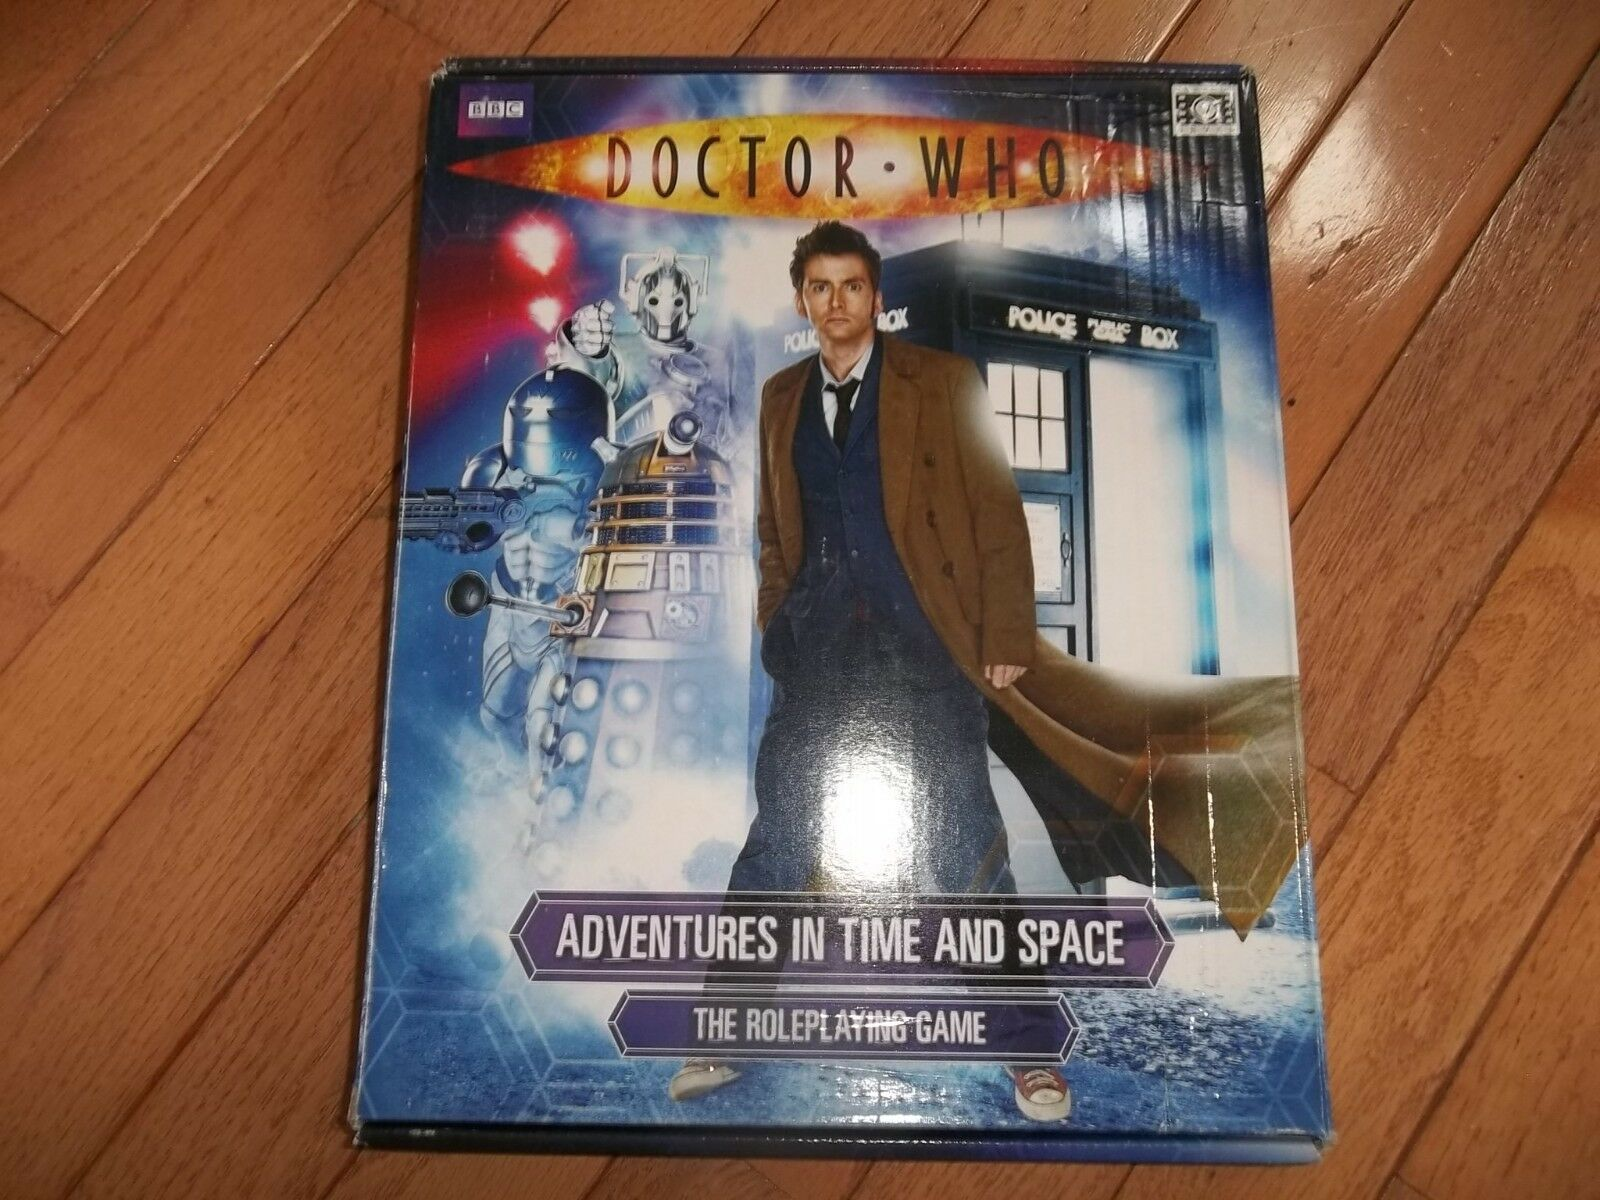 Cubicle Seven C7 BBC Doctor Who Adventures in Time and Space CB71100